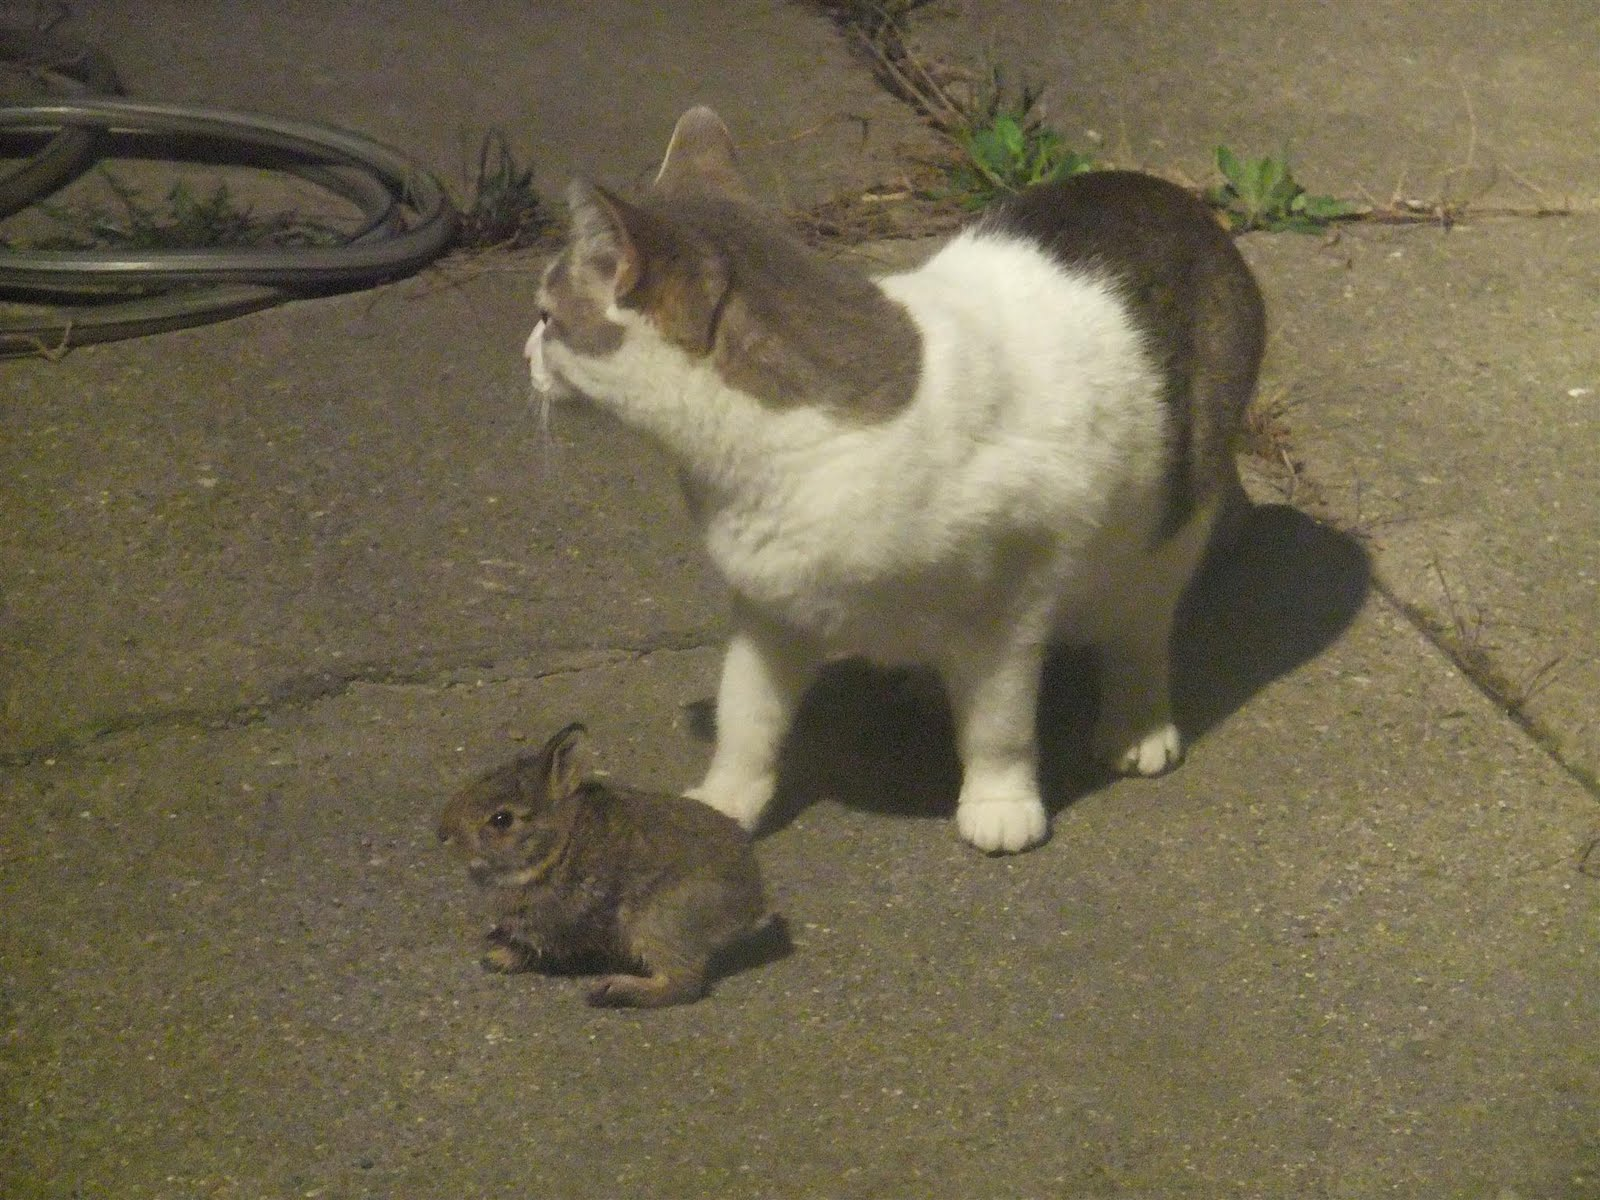 the rabbit would try to take off and hop around the yard but charlie